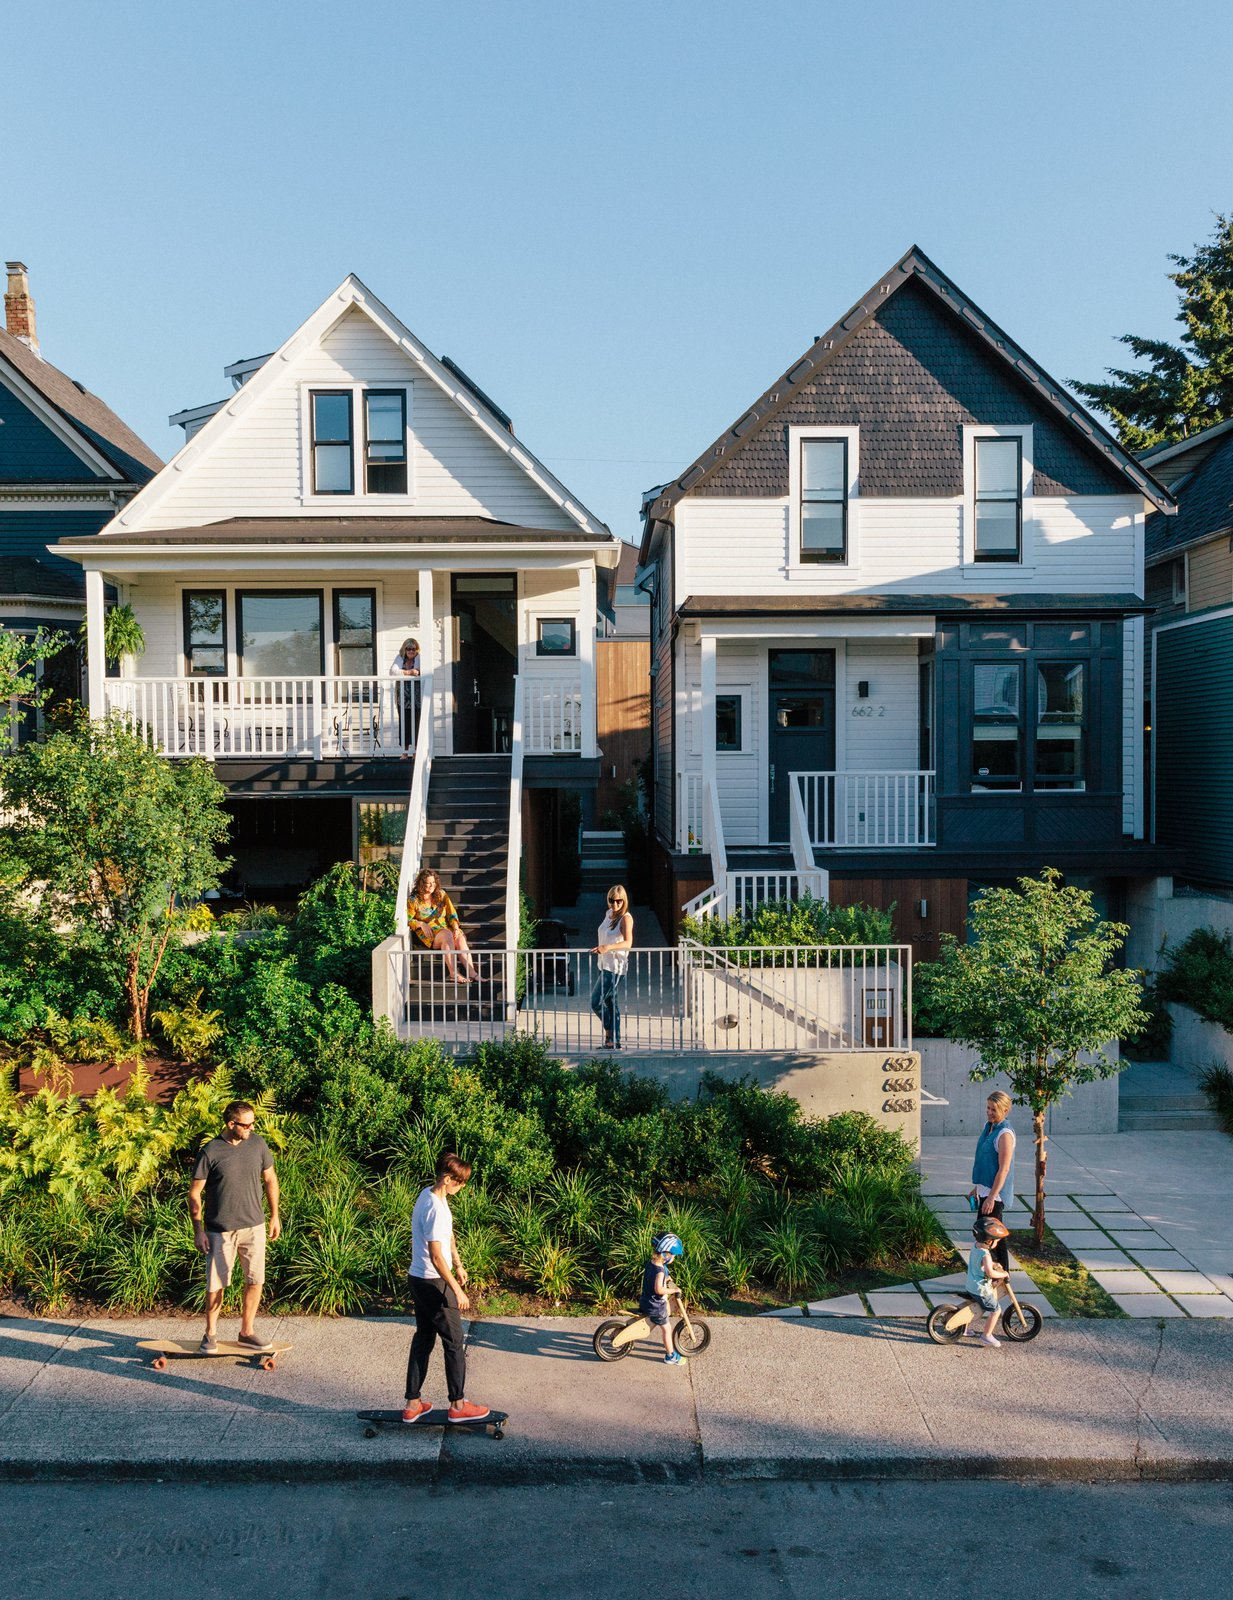 In Vancouver's Strathcona district, two side-by-side lots now hold seven residences—thanks to a thoughtful renovation of a pair Edwardian houses and the addition of a laneway, or alley, building by Shape Architecture. The team salvaged as much 120-year-old siding as they could for use on the street-facing facades. Tagged: Exterior and House.  Best Photos from As Housing Costs Soar, Two Homes Multiply to Seven